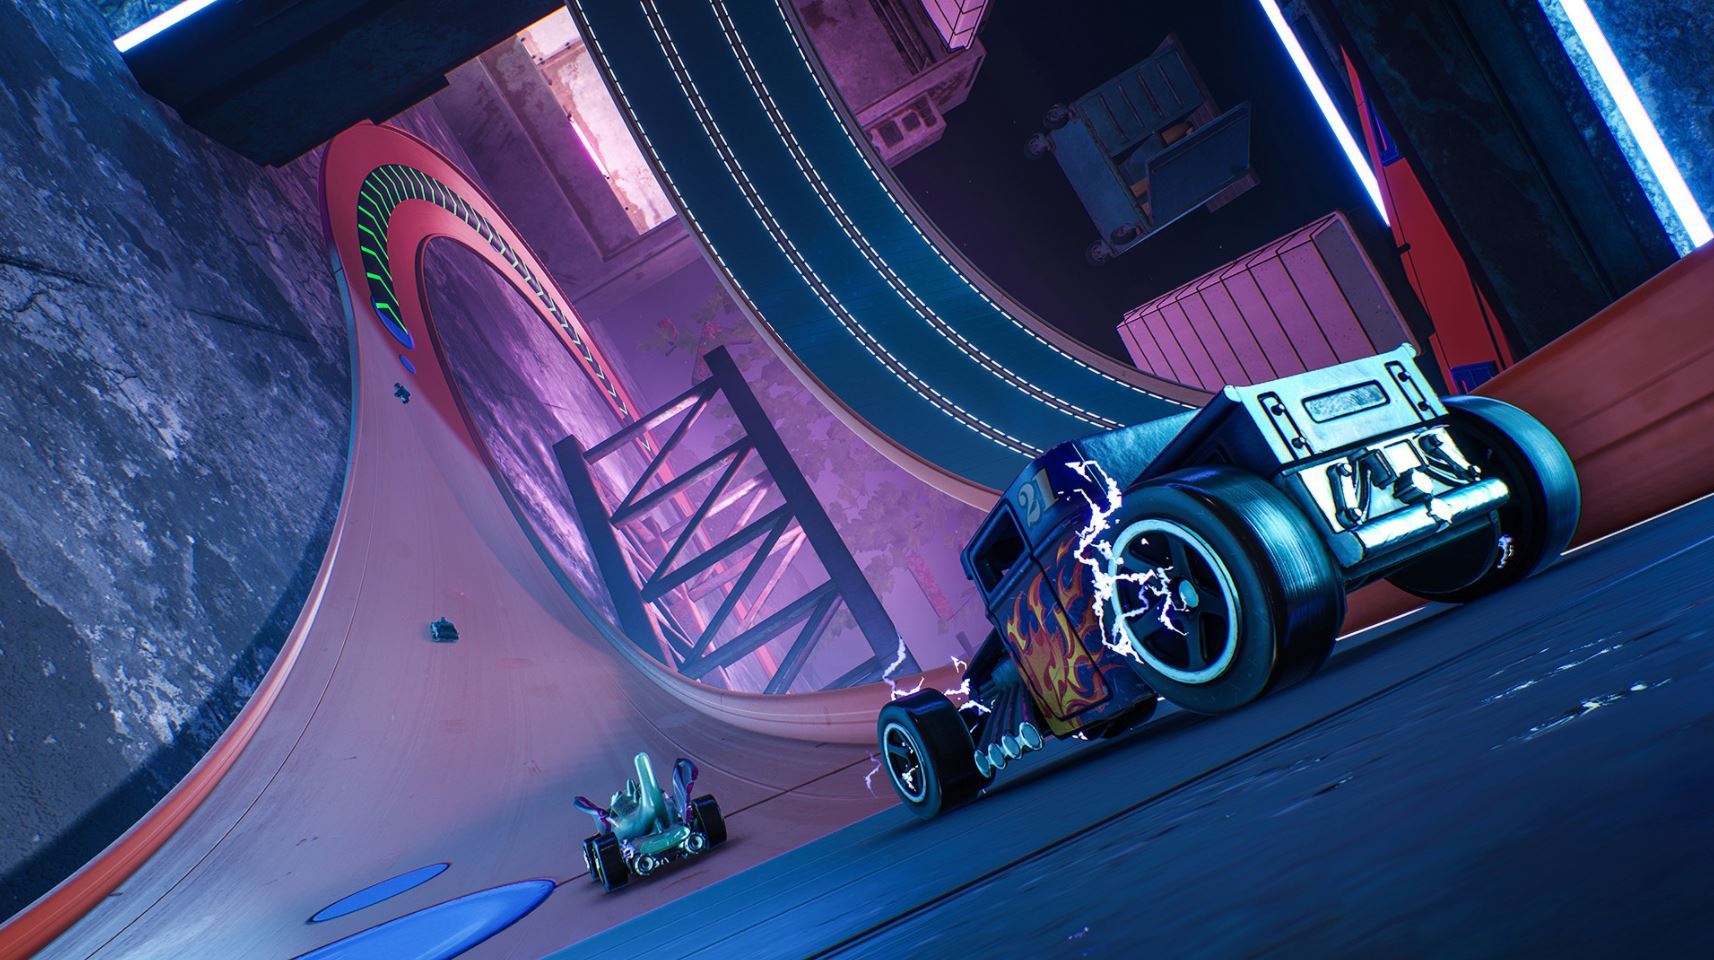 get-a-first-look-at-hot-wheels-unleashed-gameplay-for-ps5-and-ps4-in-the-latest-trailer